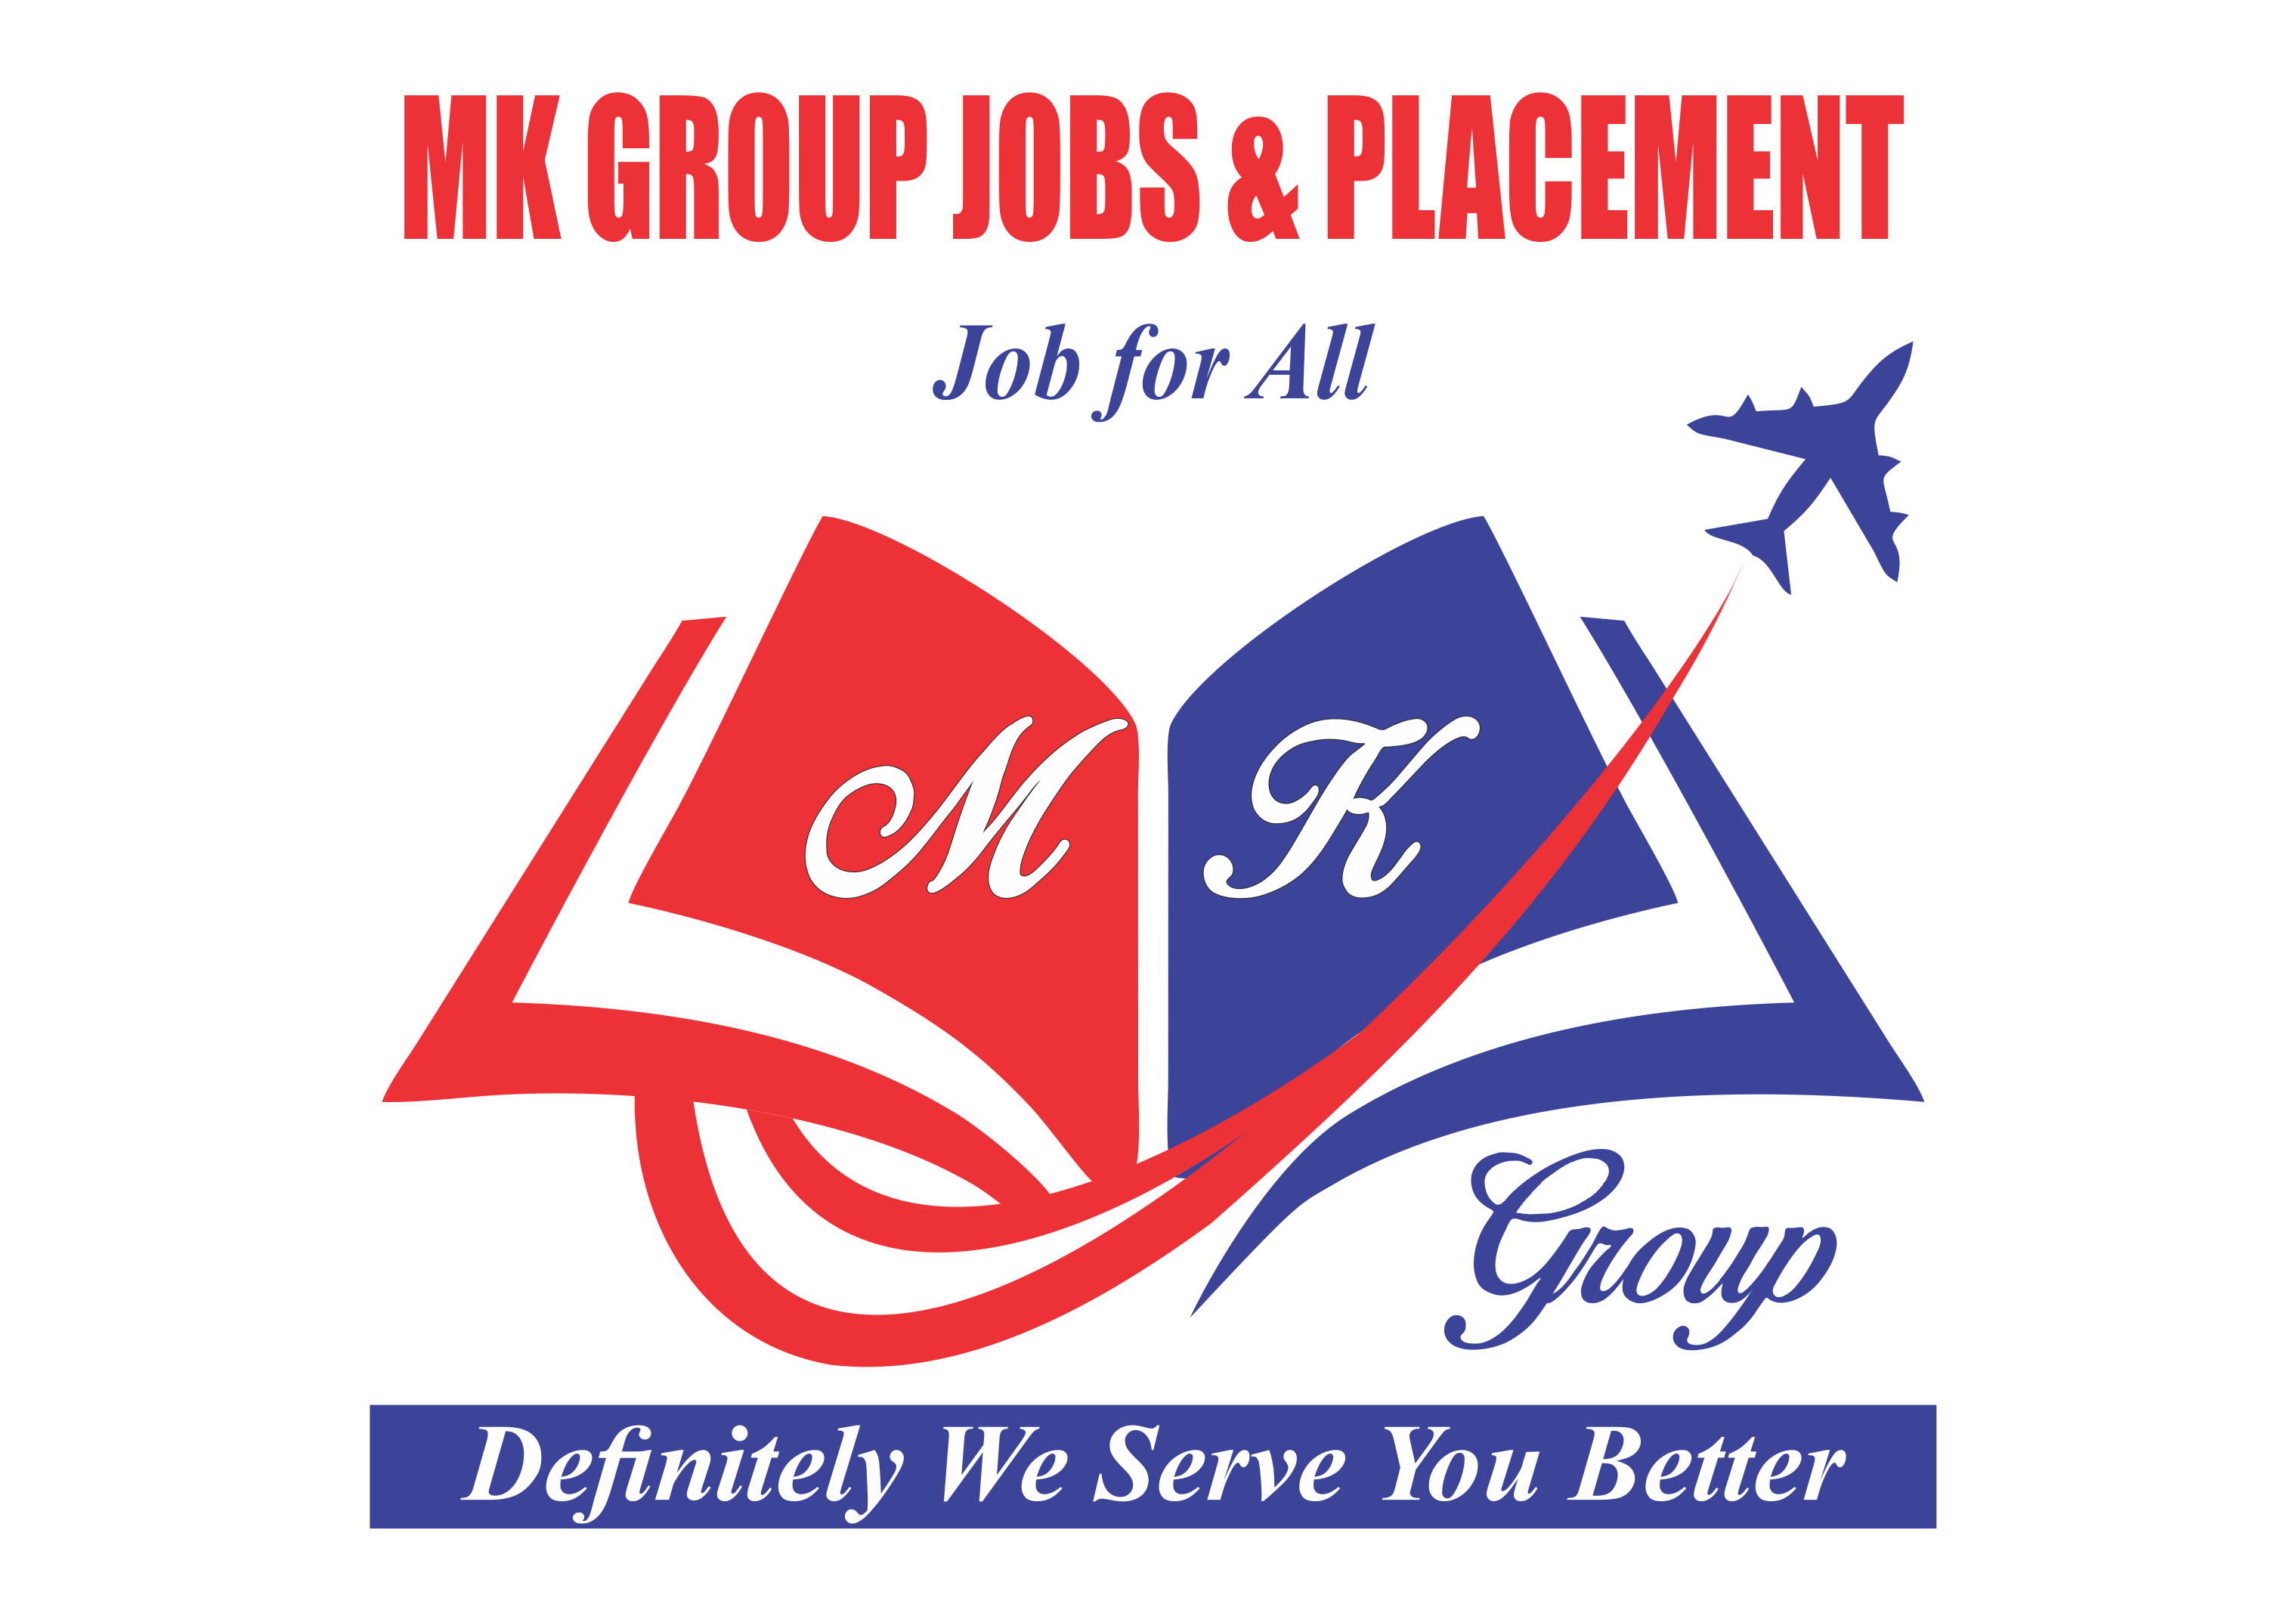 MK GROUP JOBS AND PLACEMENT